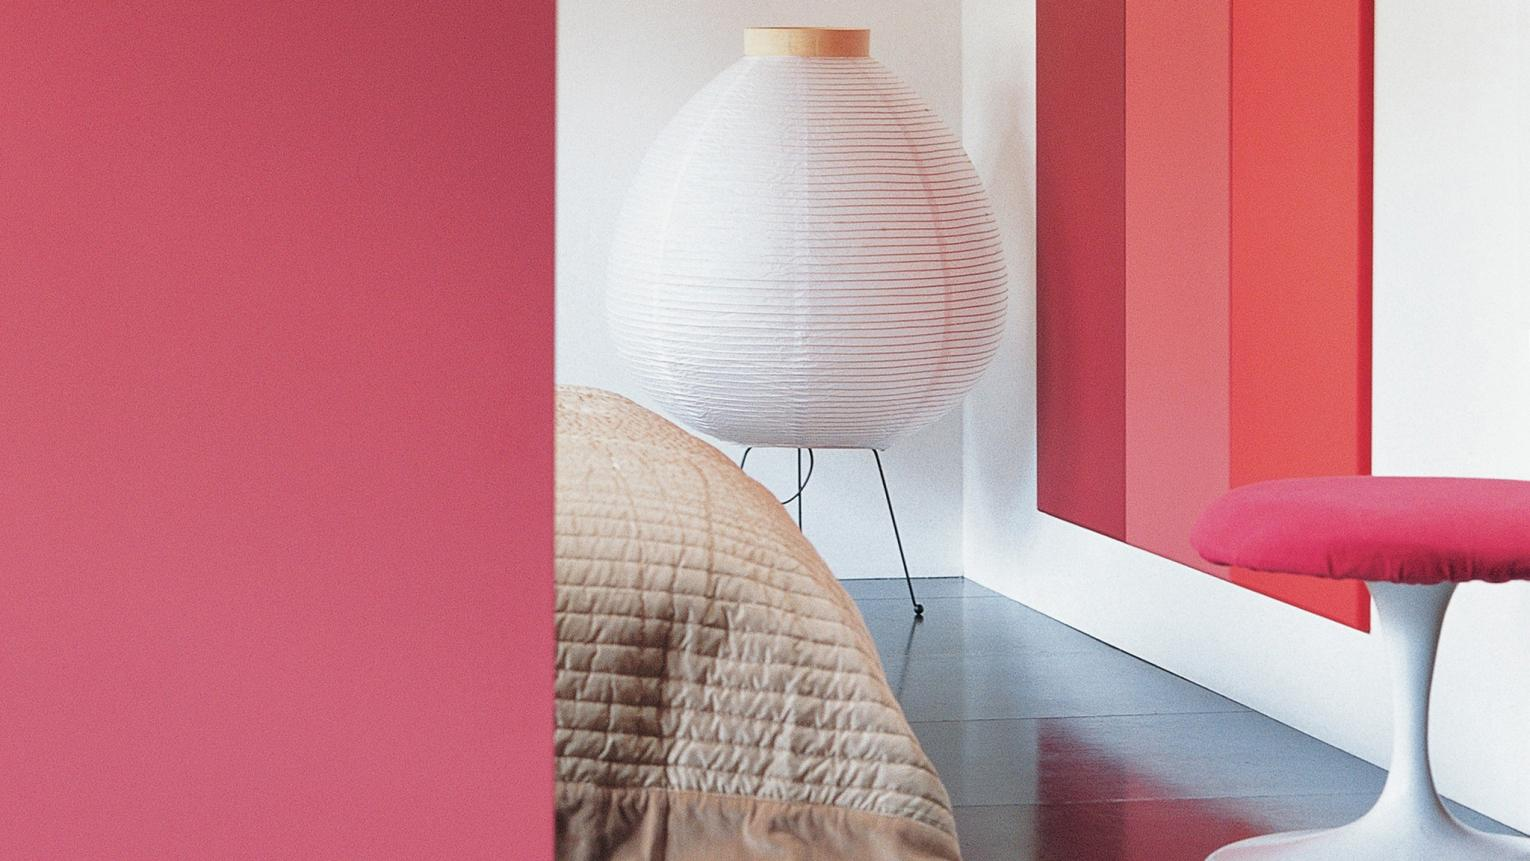 A spectrum of red shades brings an upbeat mood to the bedroom.